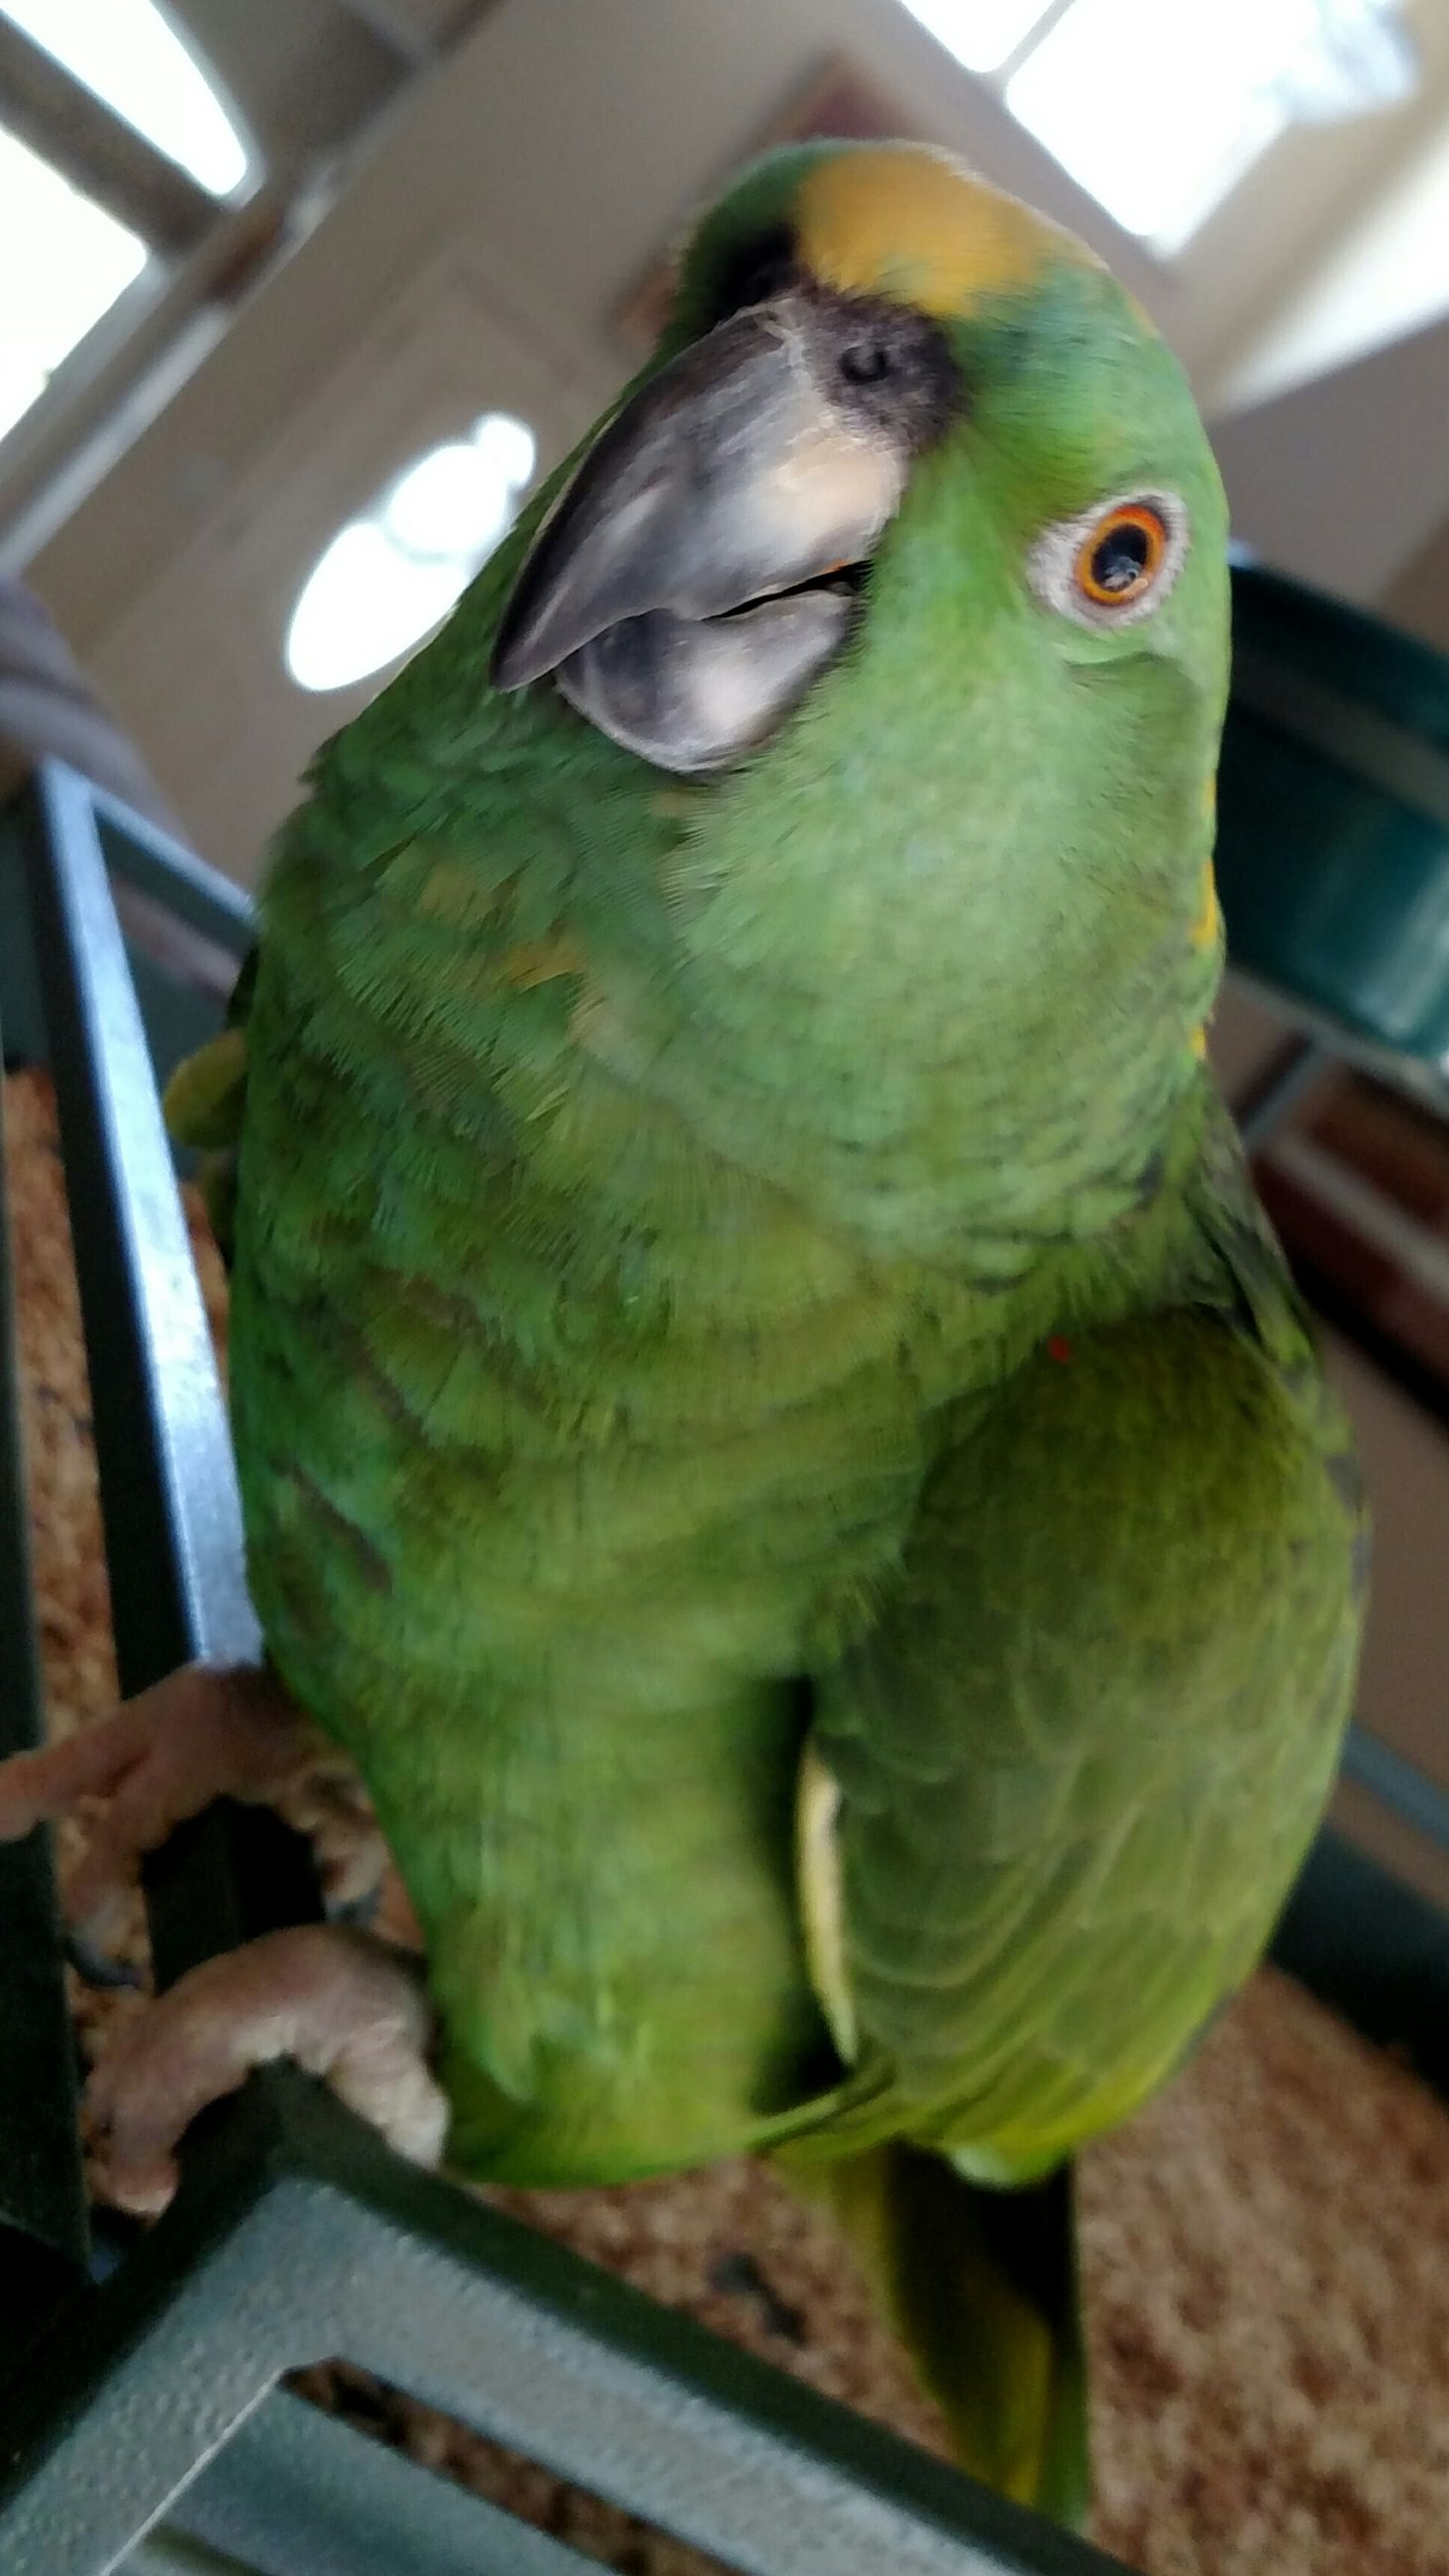 animal themes, one animal, indoors, bird, animals in the wild, close-up, pets, parrot, wildlife, animal head, domestic animals, focus on foreground, perching, cage, green color, no people, portrait, looking at camera, day, high angle view